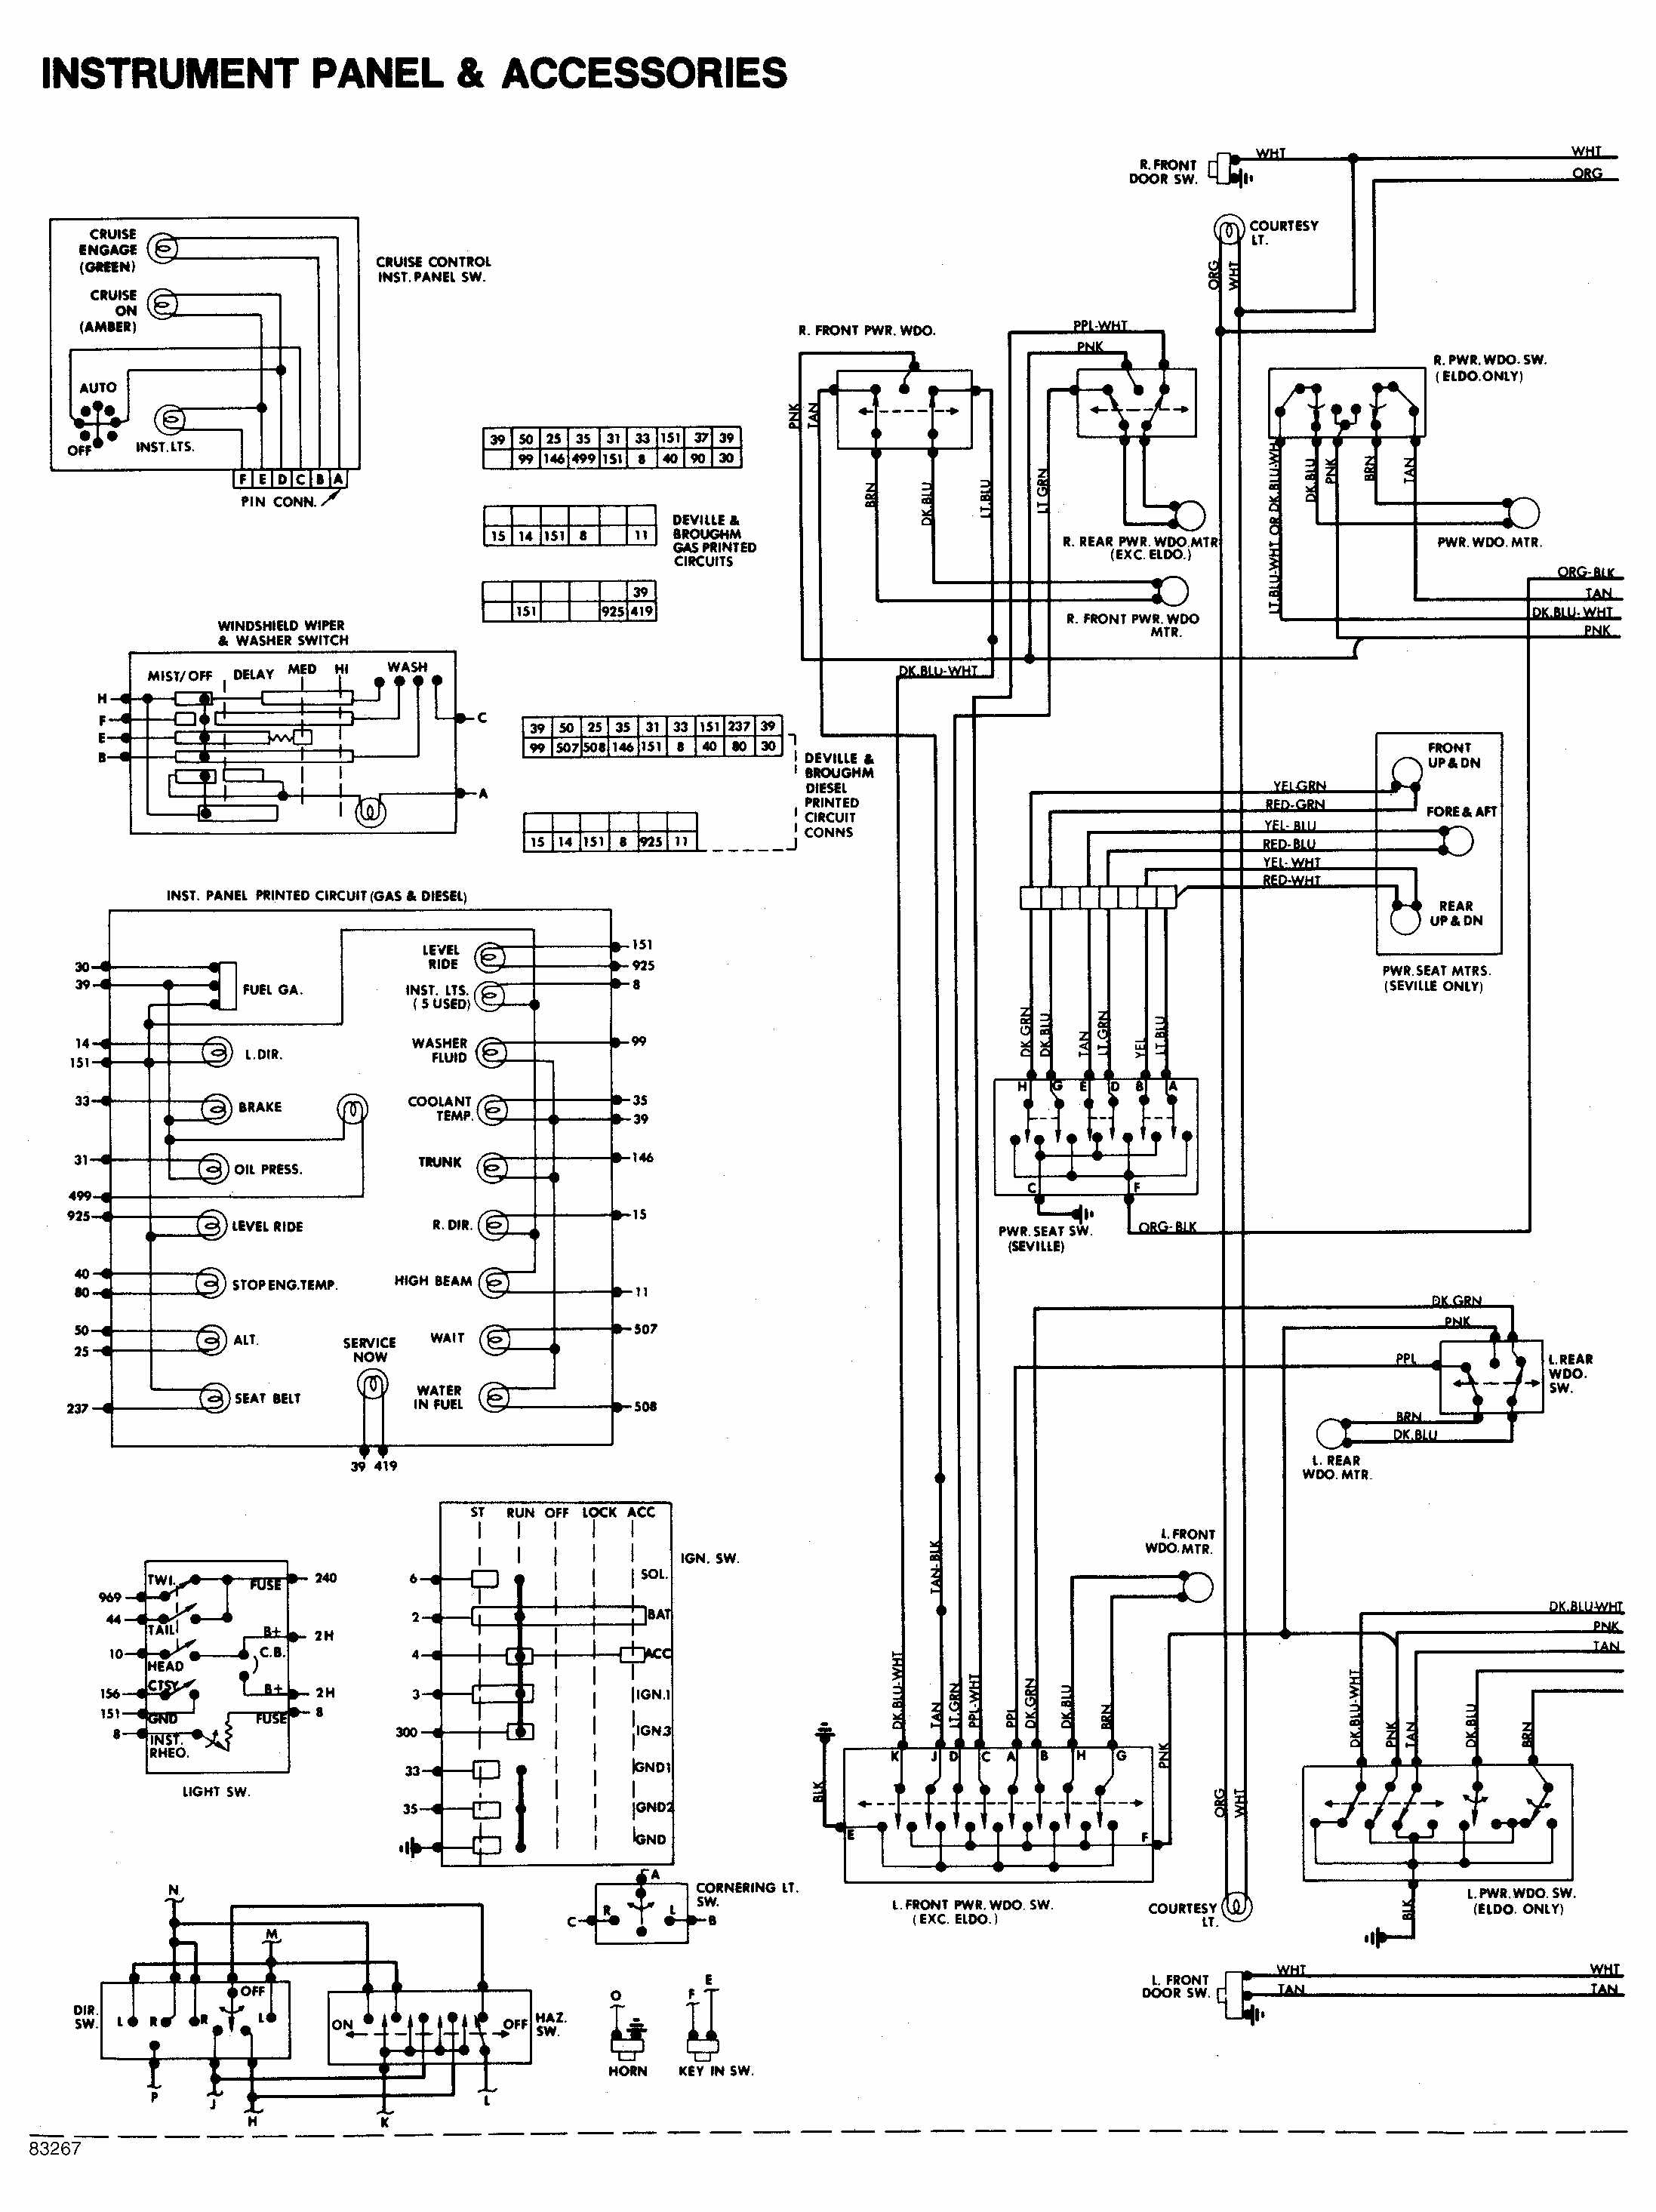 1977 Chevelle Air Conditioning Wiring Diagram Bookmark About For Compressor Further Fuse Box Together With Library Rh 85 Informaticaonlinetraining Co Ruud